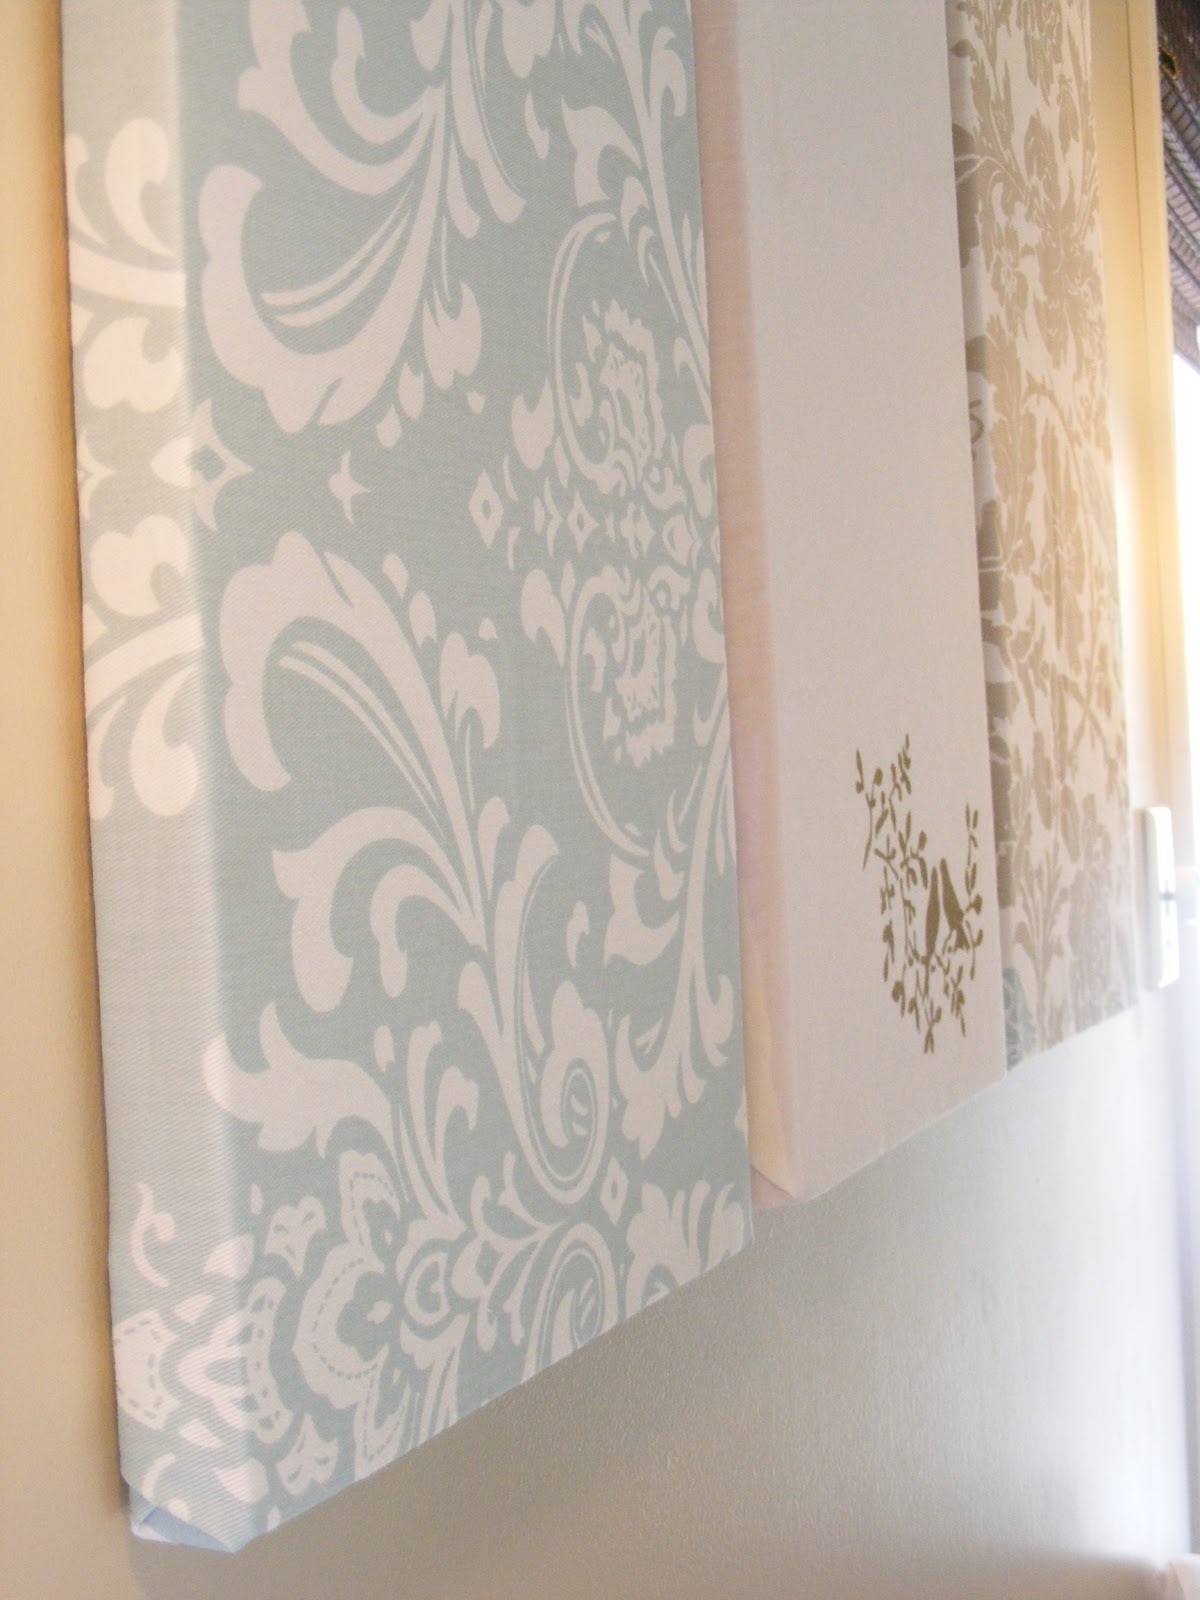 The Complete Guide To Imperfect Homemaking: Simple, Thrifty Diy Art Regarding Recent Padded Fabric Wall Art (View 13 of 15)